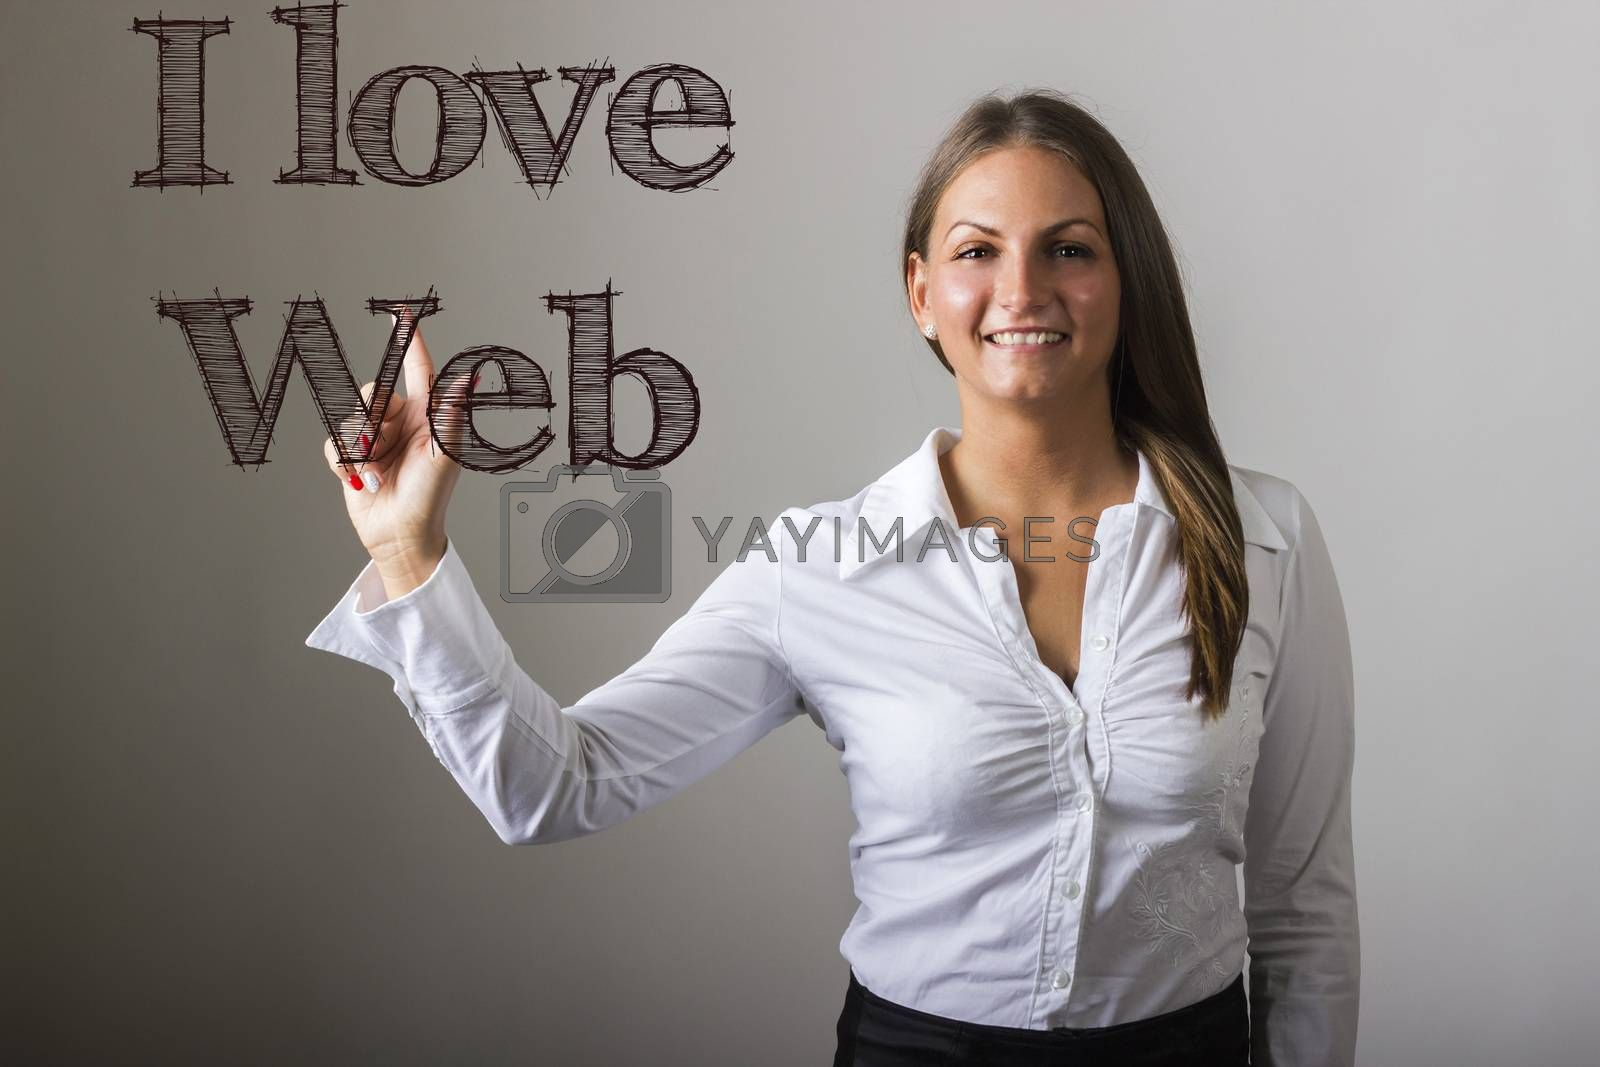 I love web  - Beautiful girl touching text on transparent surface - horizontal image